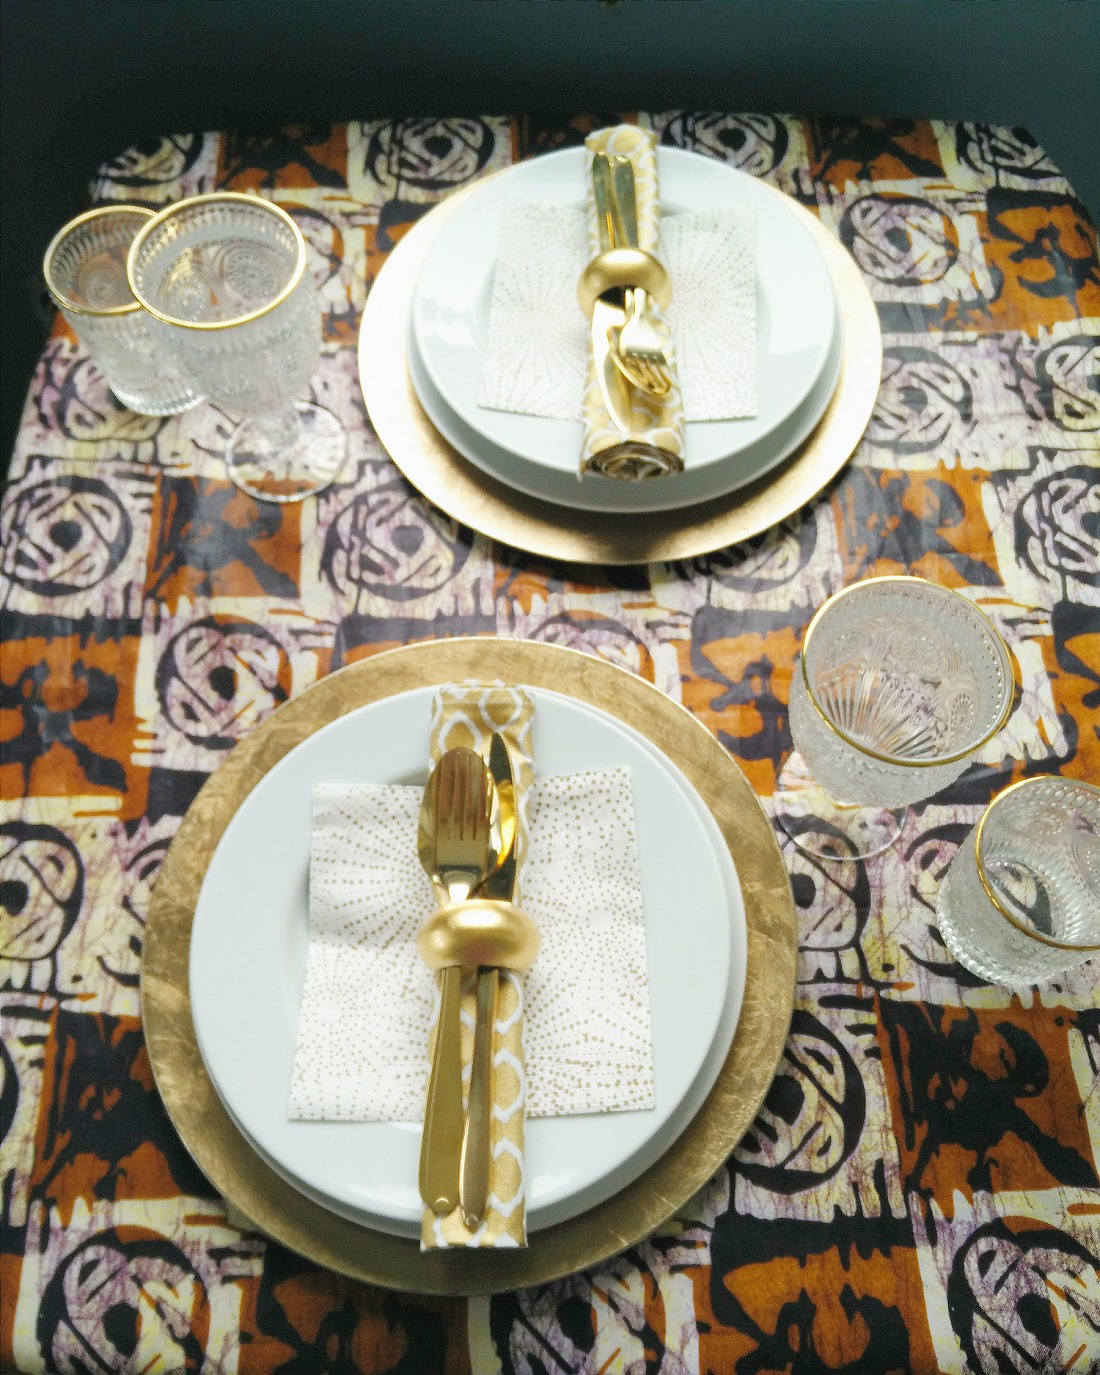 xmas table laid with brown and cream ankara fabric